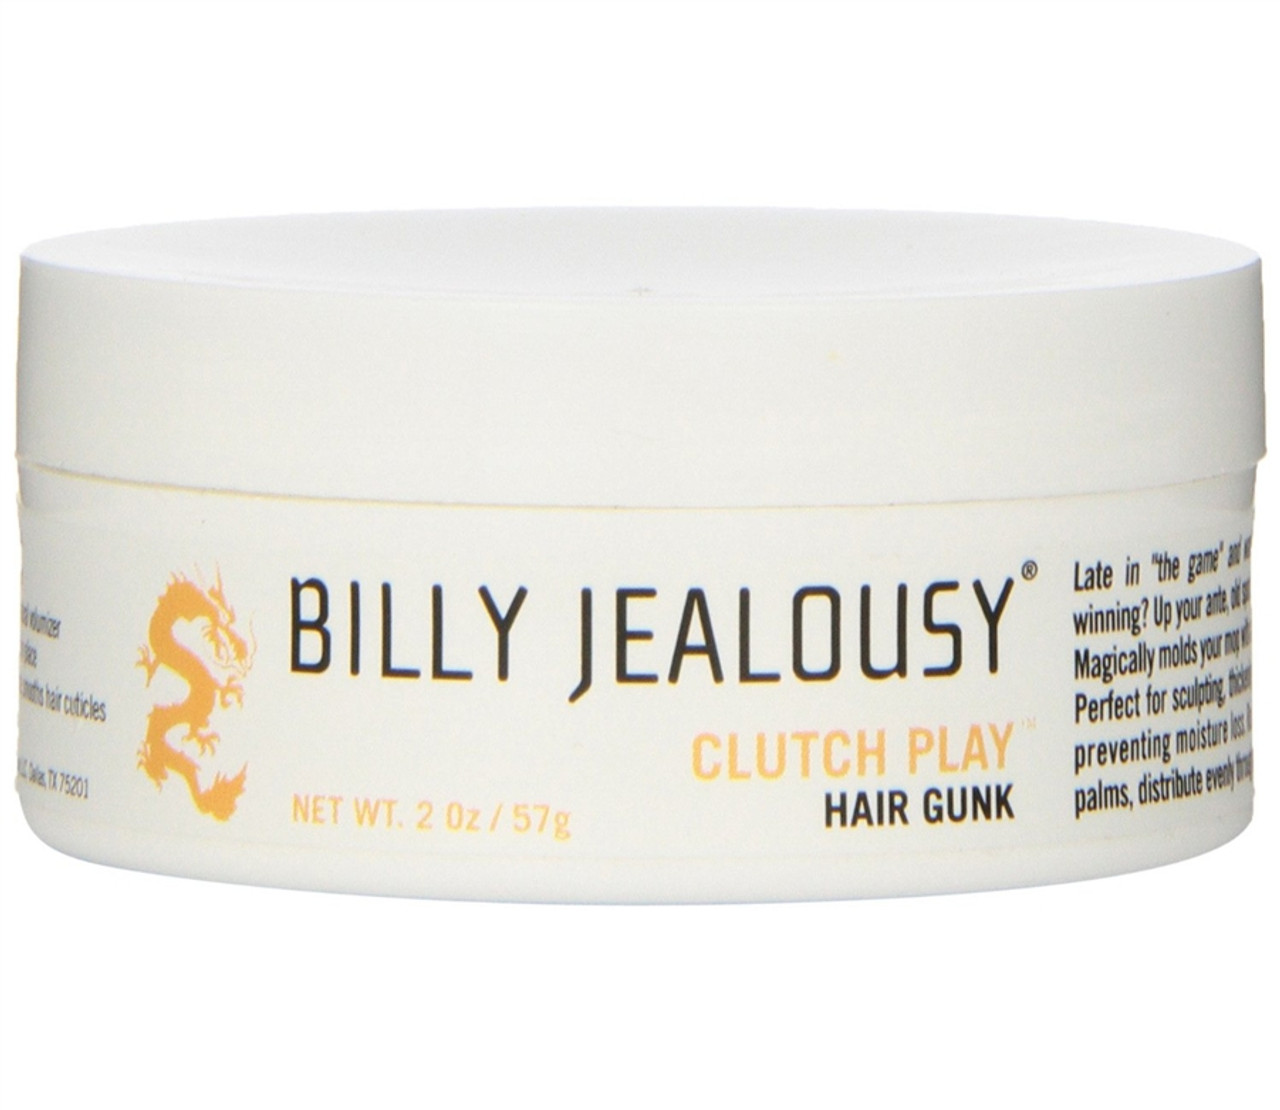 Billy Jealousy Clutch Play Hair Gunk